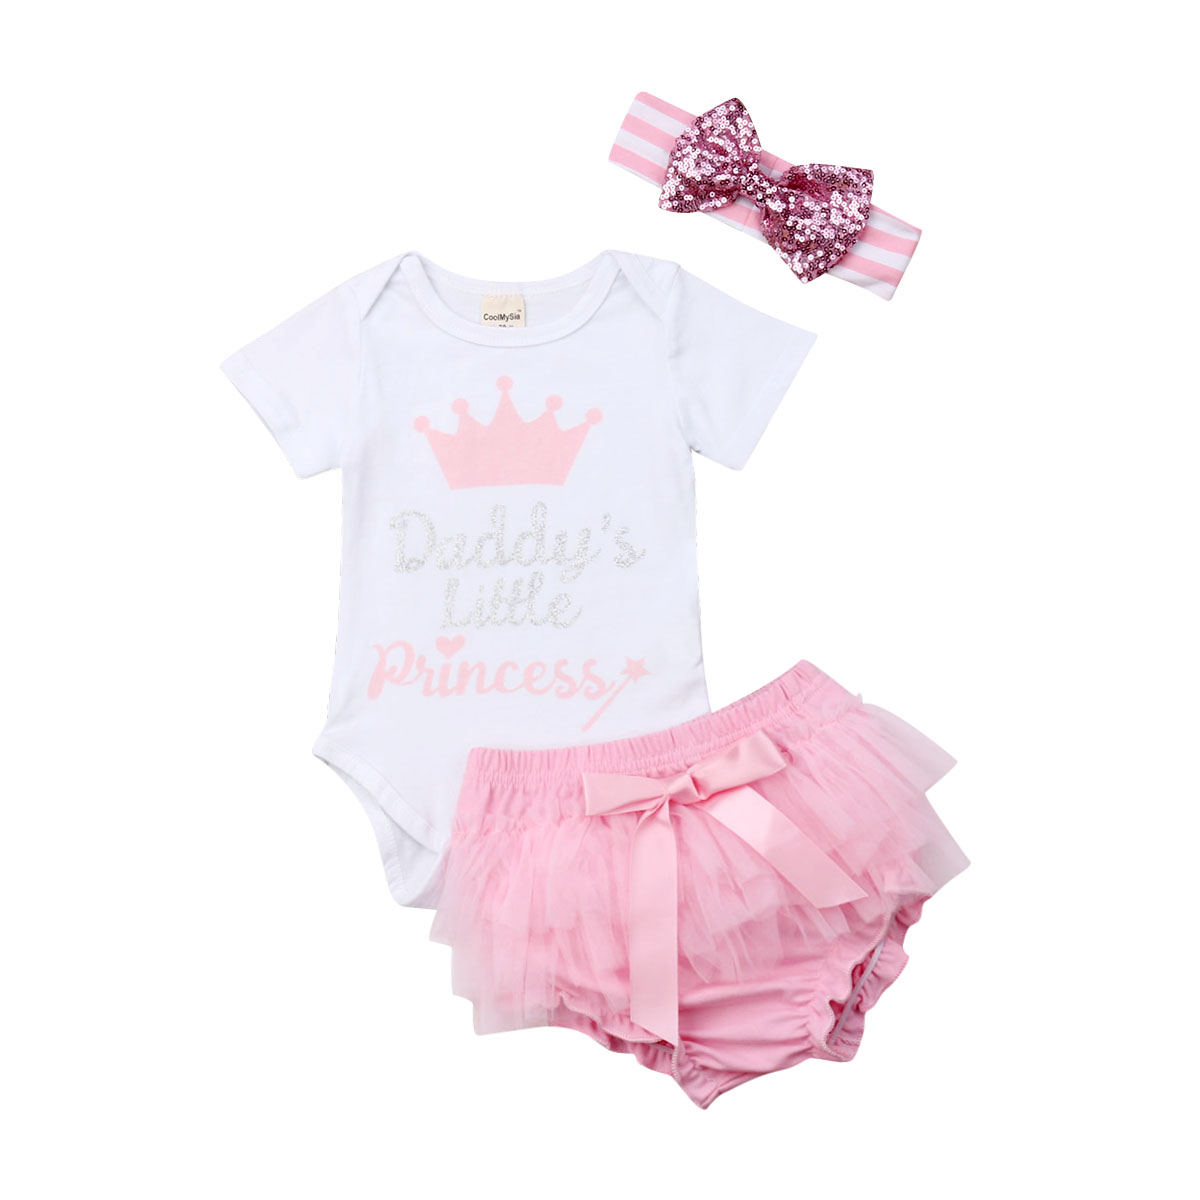 US 3PCS Infant Baby Girl Daddy/'s Little Princess Tops Romper Tutu Shorts Outfit